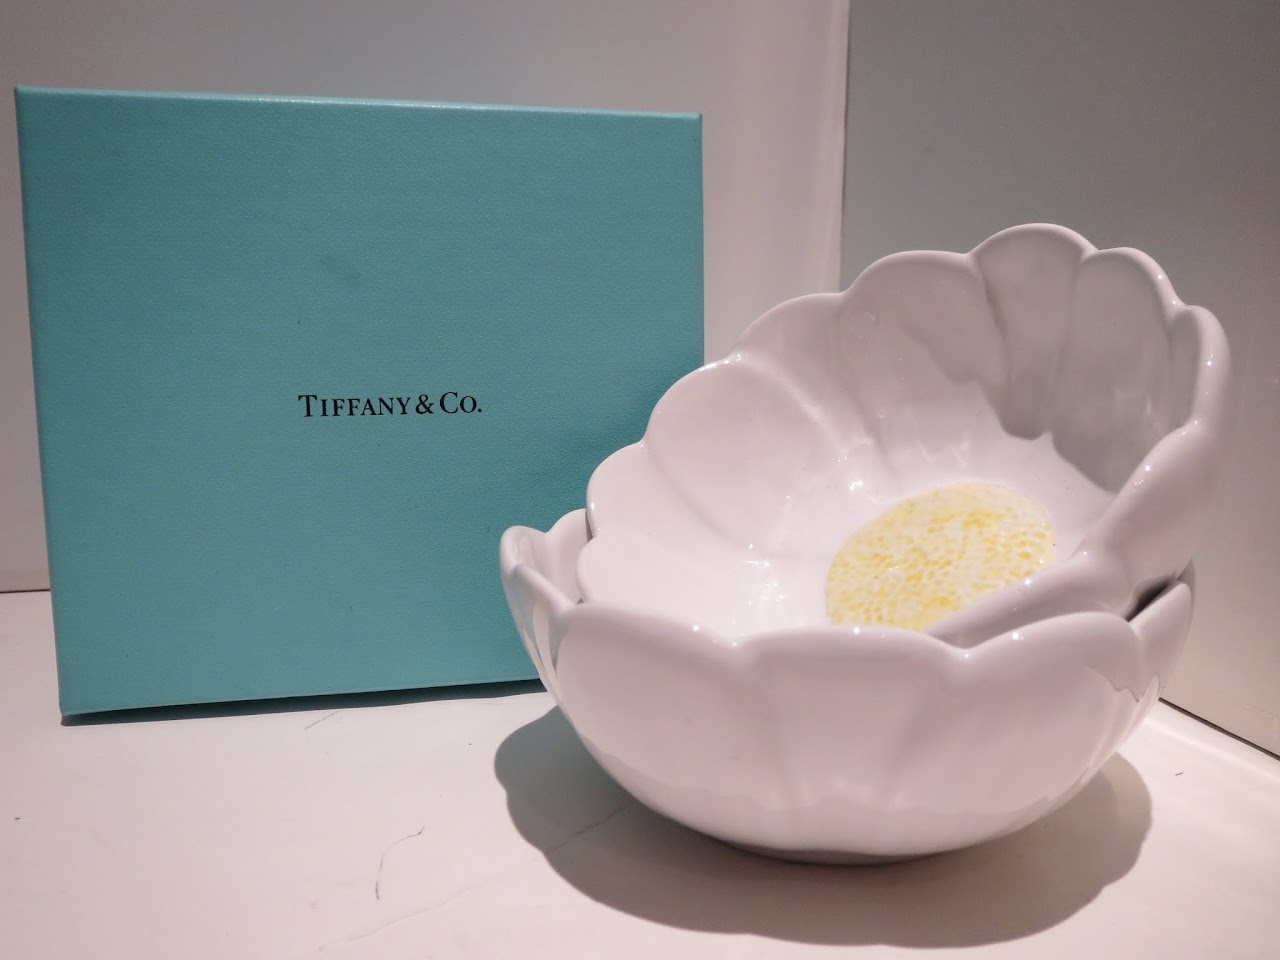 Tiffany & Co. Flower Bowl Duo